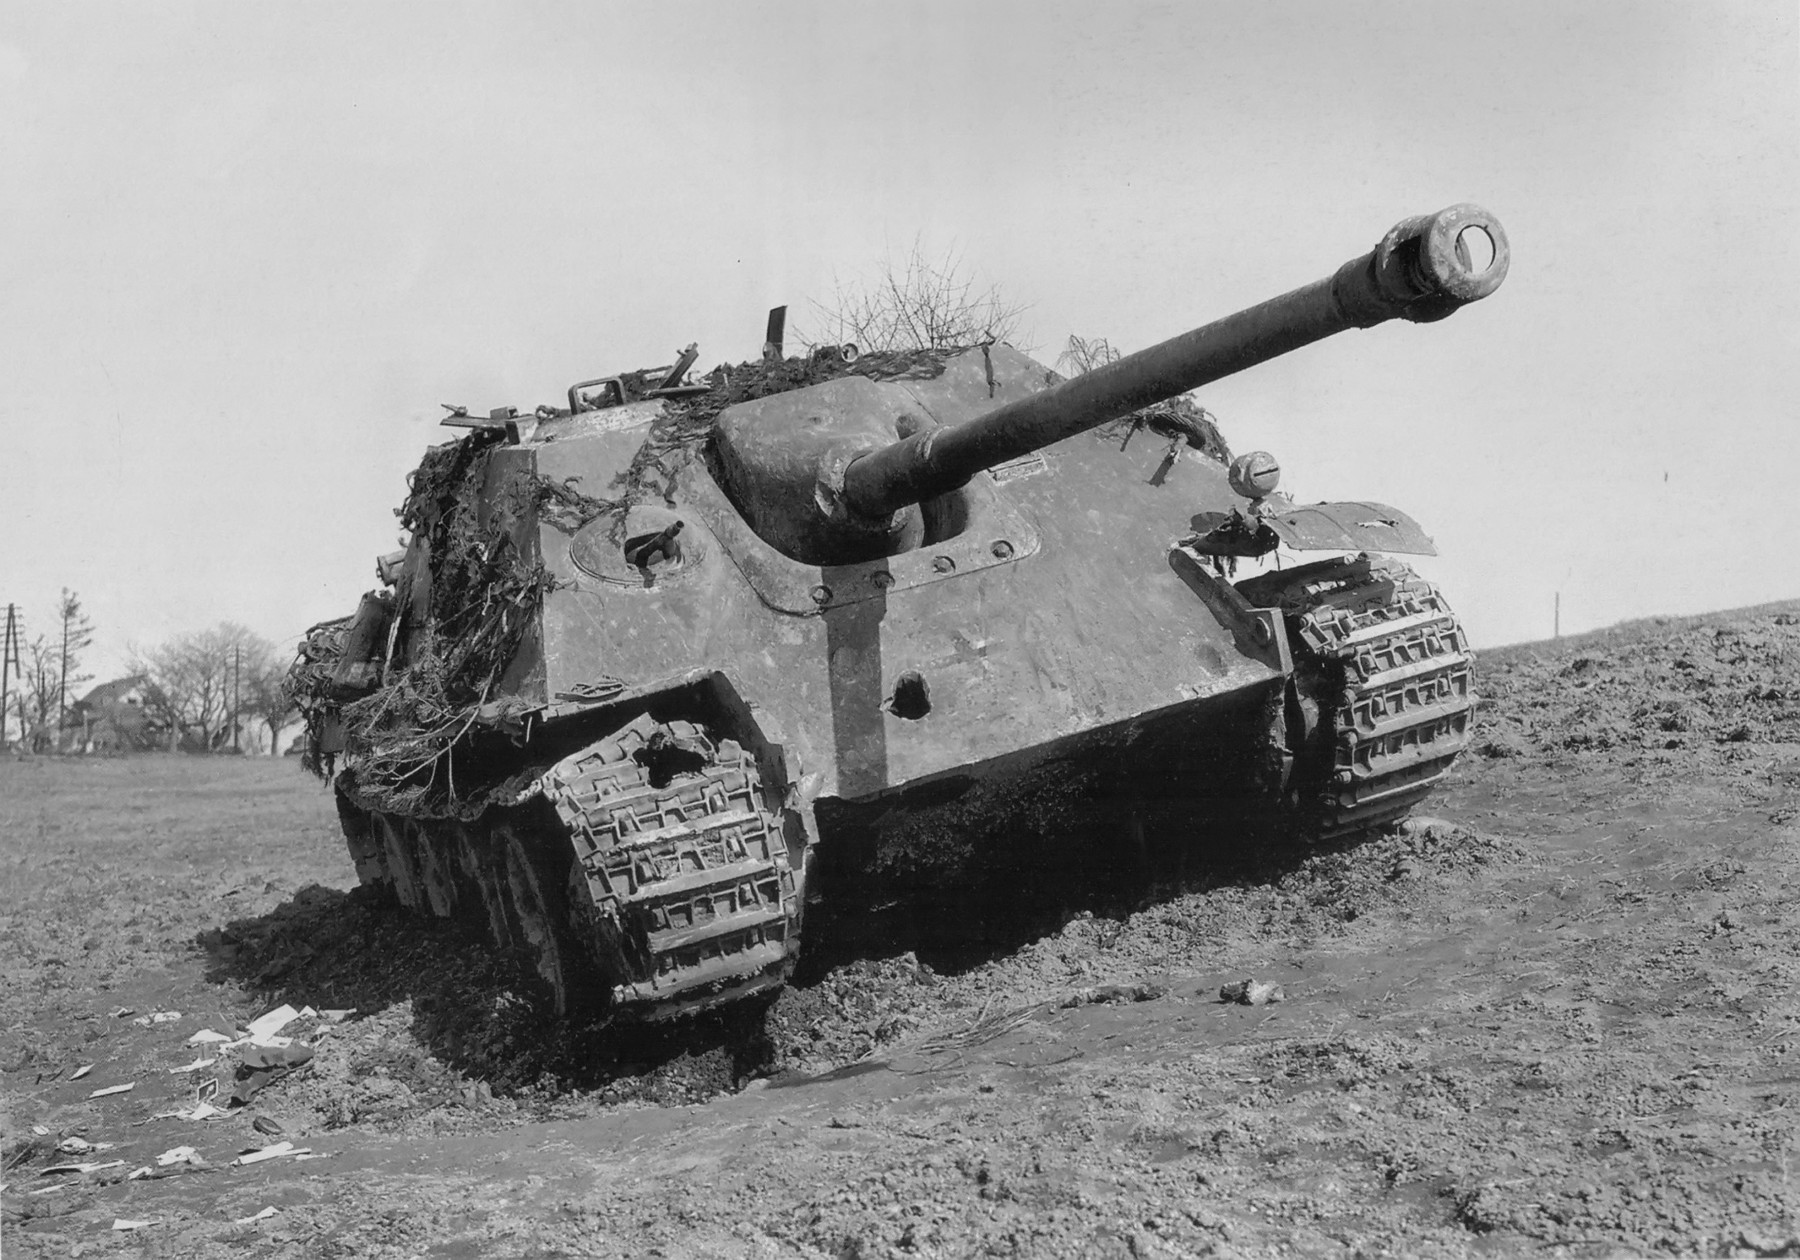 A Jagdpanther destroyed by the Americans near Hargarten